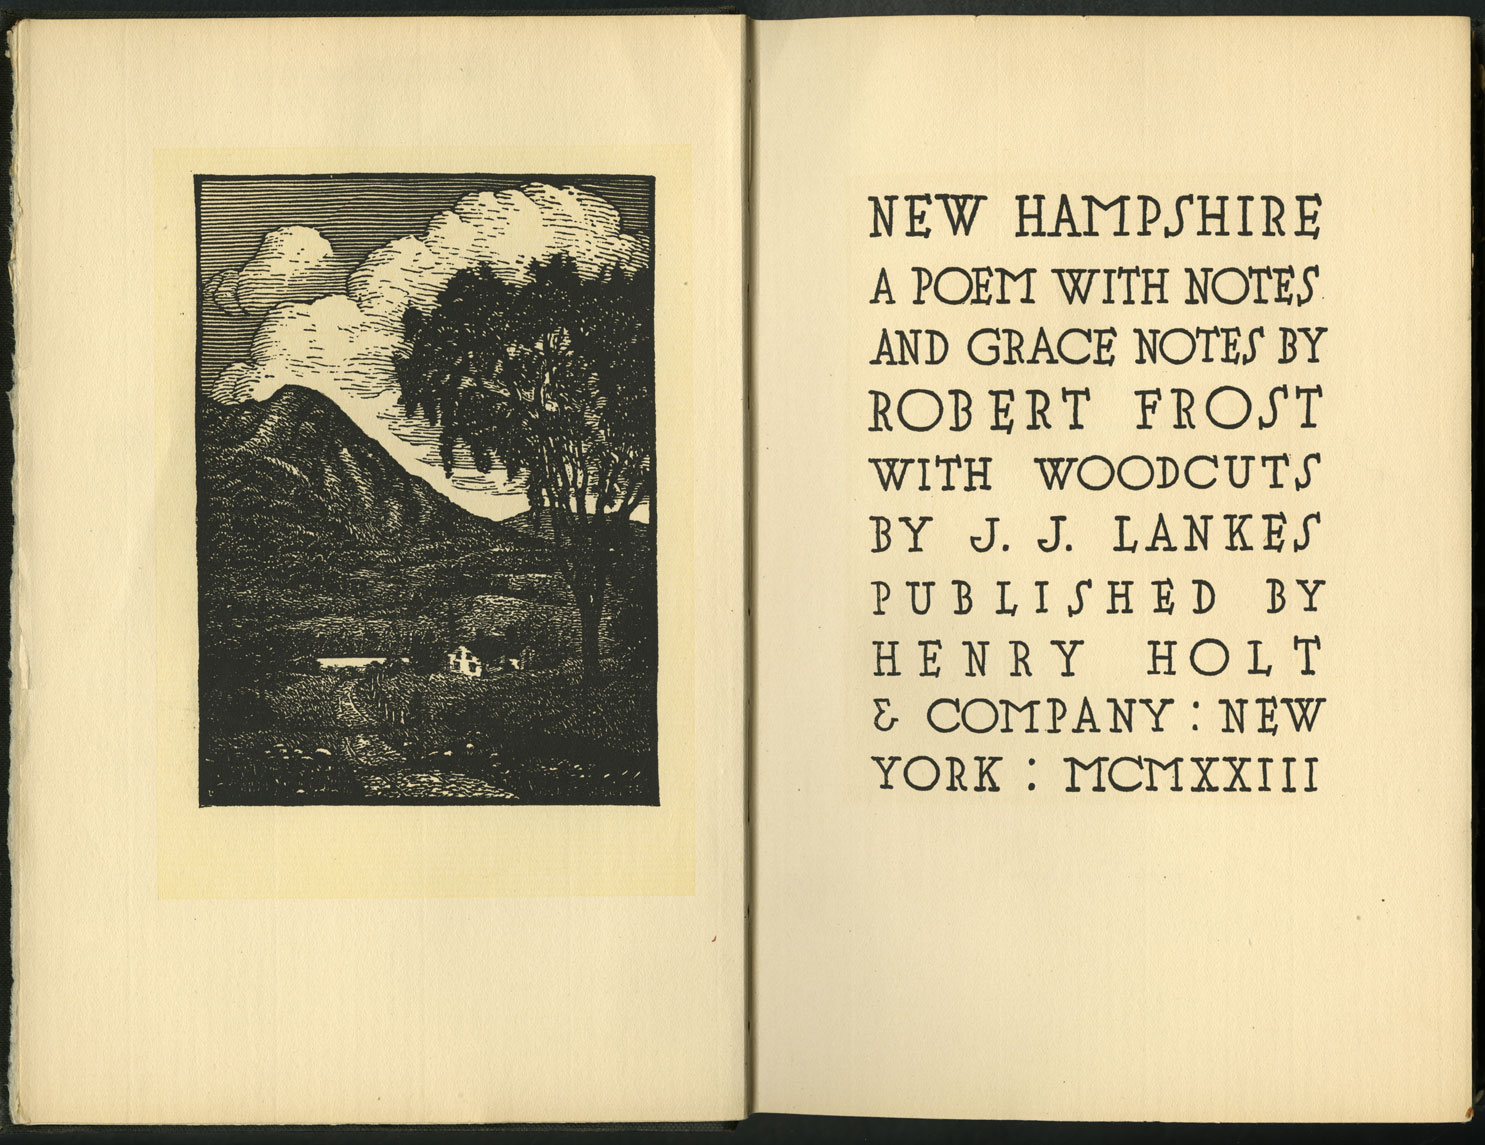 An open book is shown with an illustration and title page. The illustration on the left shows a woodcut of a rural mountain scene. A country lane with a large tree next to it leads to a small house and pond. There are mountains and hills in the background, and clouds in the sky. The title page on the right reads